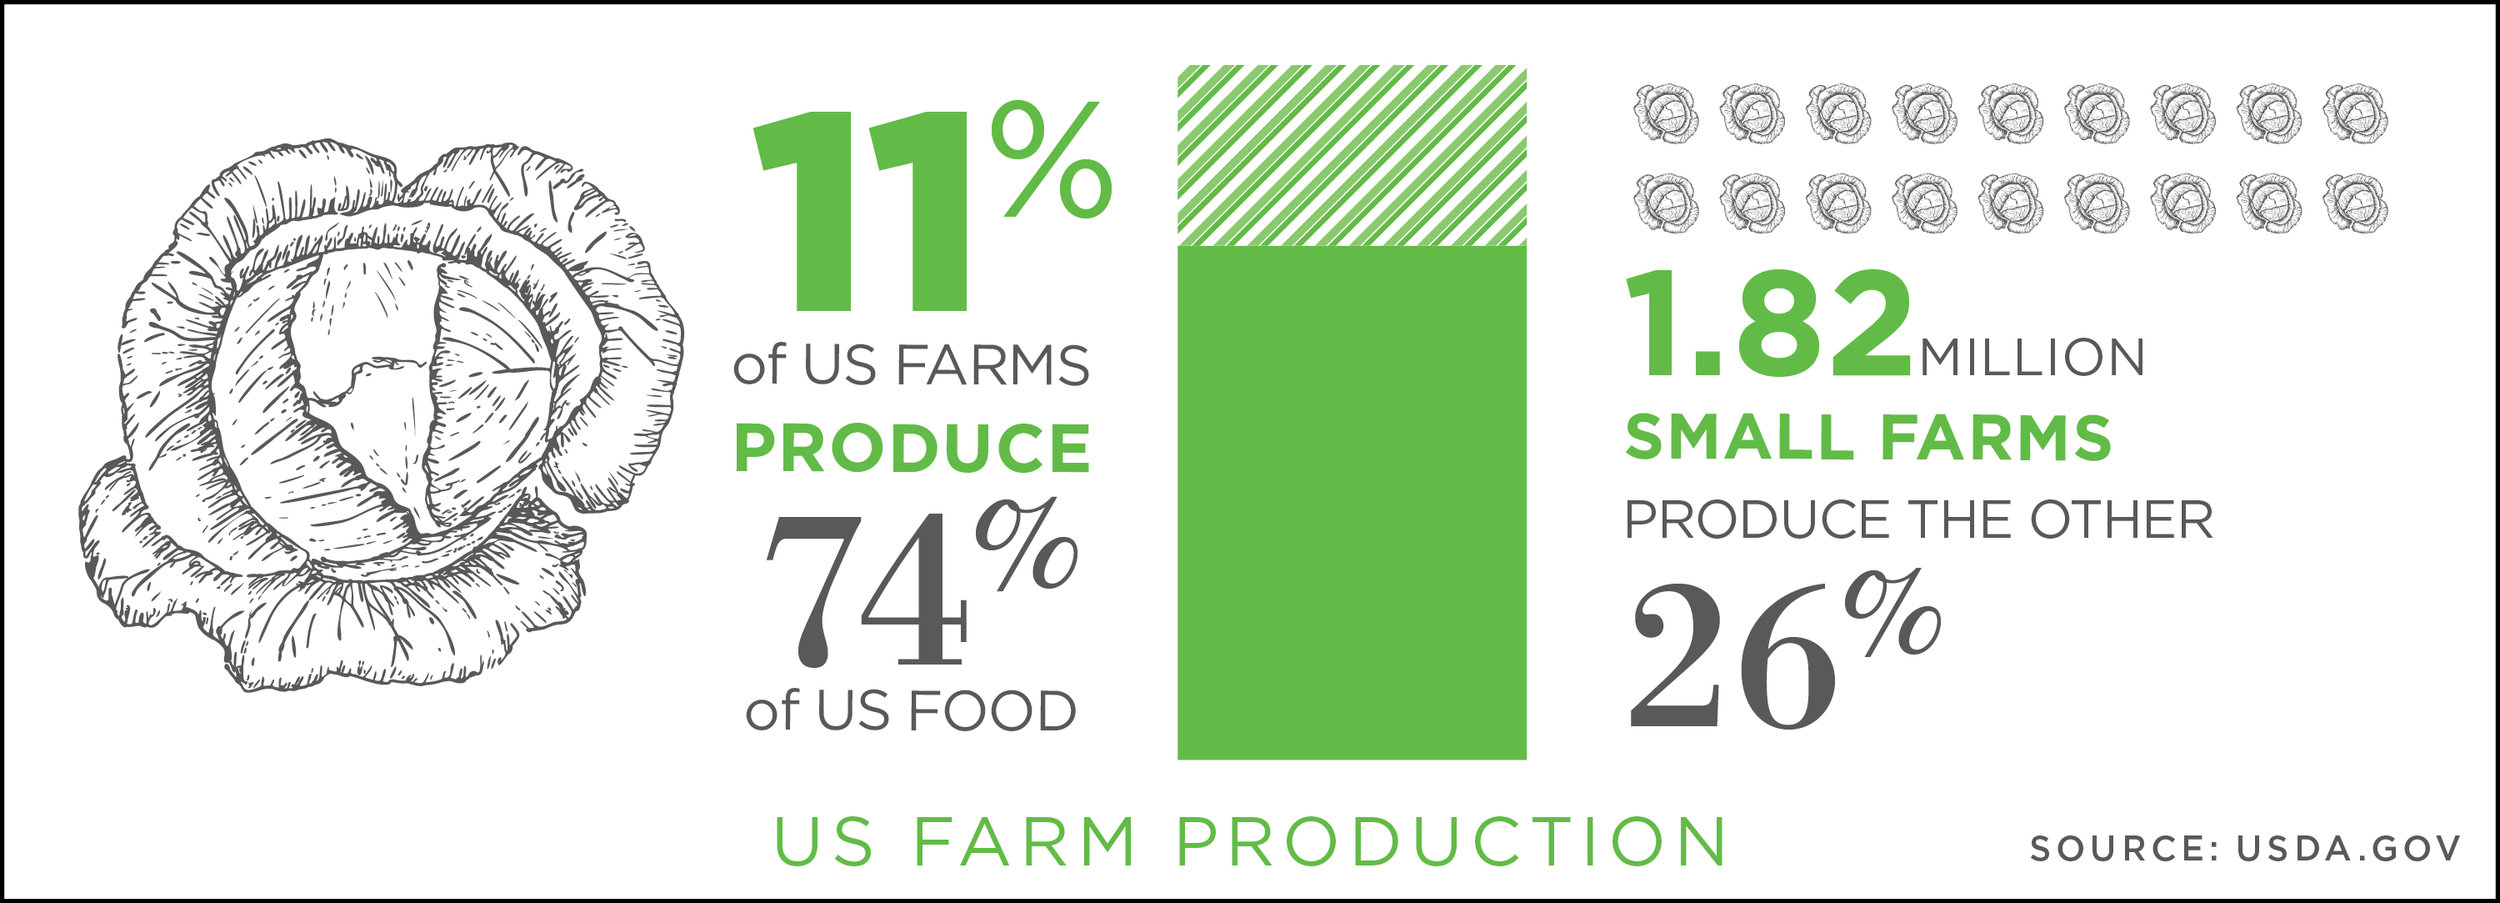 VAF 023 US Farm Production.jpg